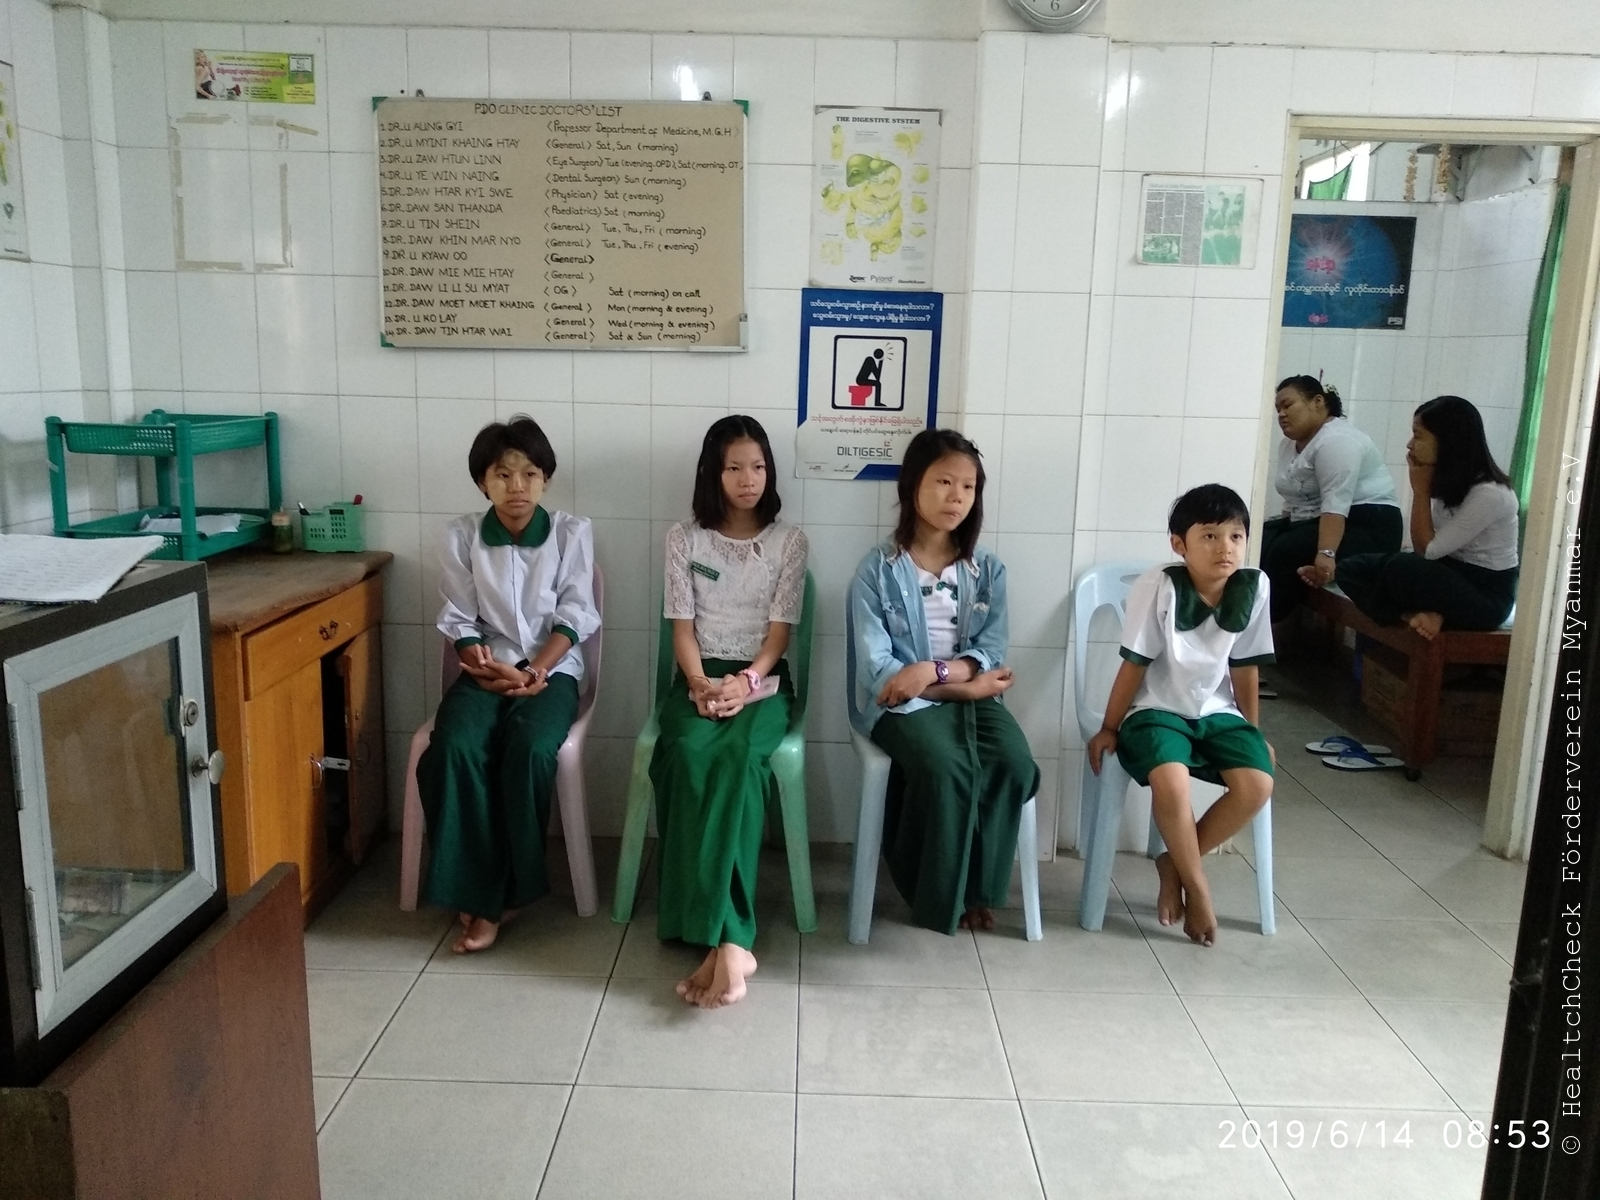 Wz Web HealthCheckMandalay 5